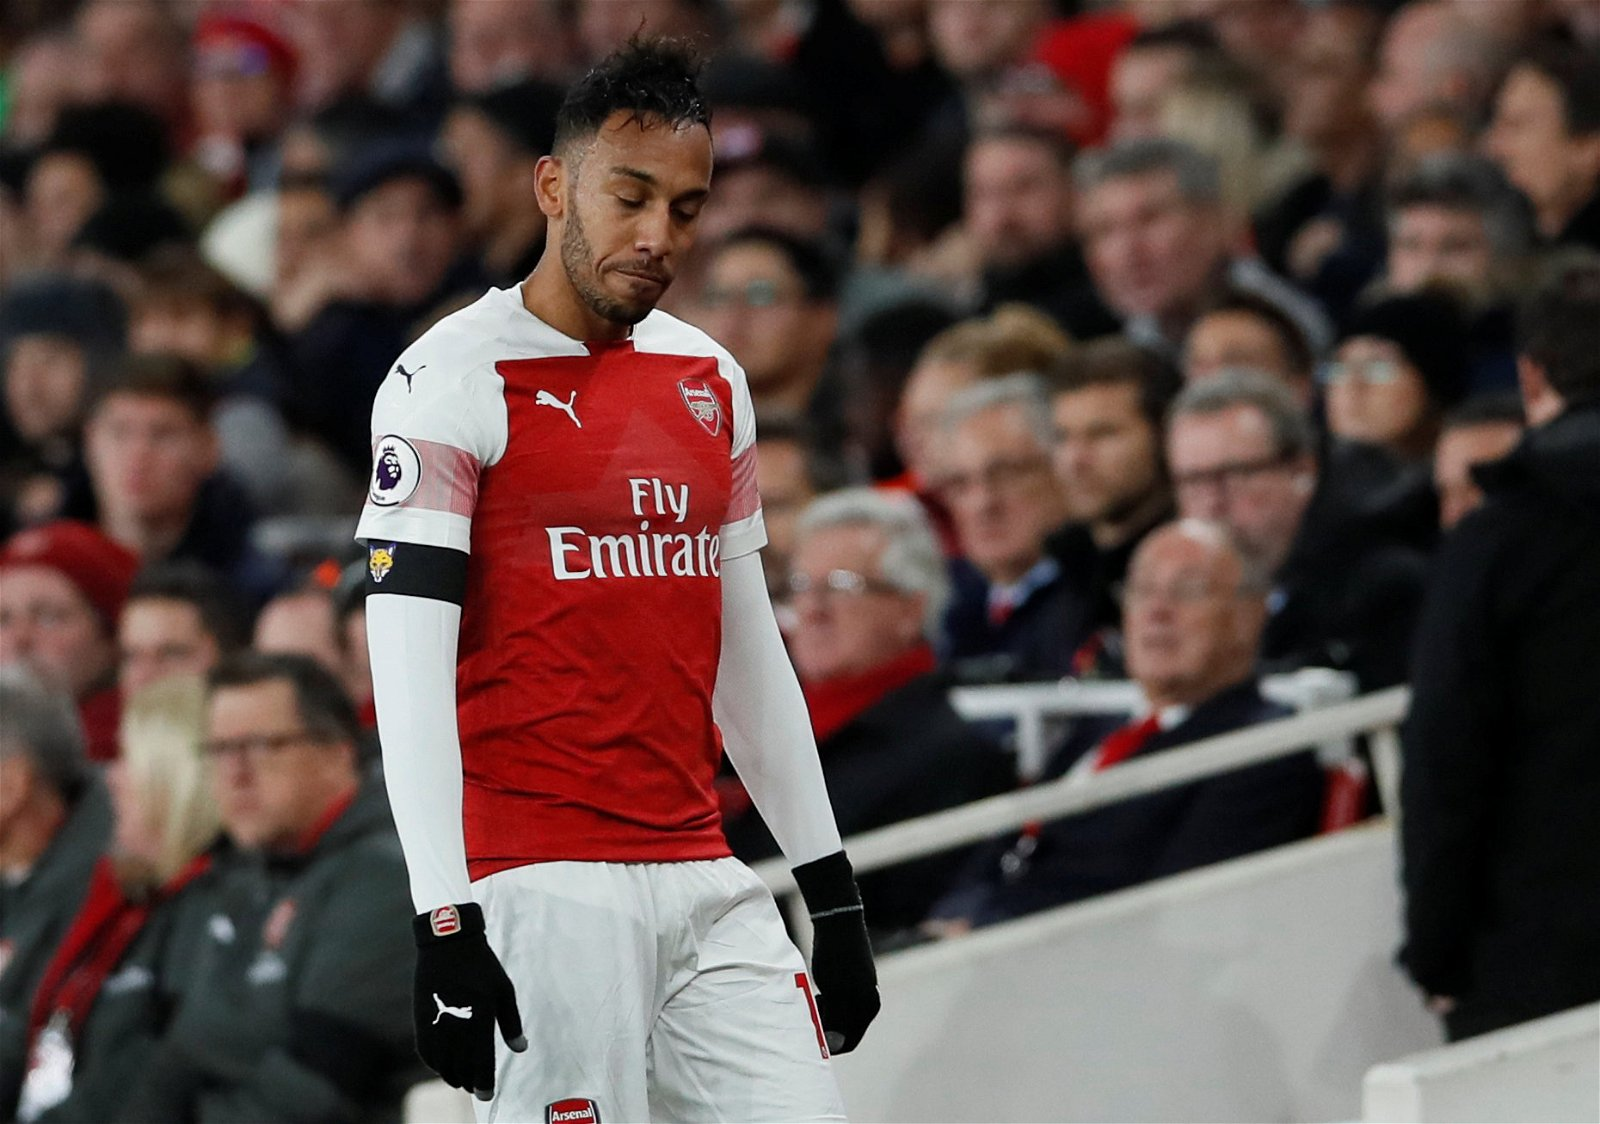 Arsenal's Pierre-Emerick Aubameyang holds himself back after being substituted off